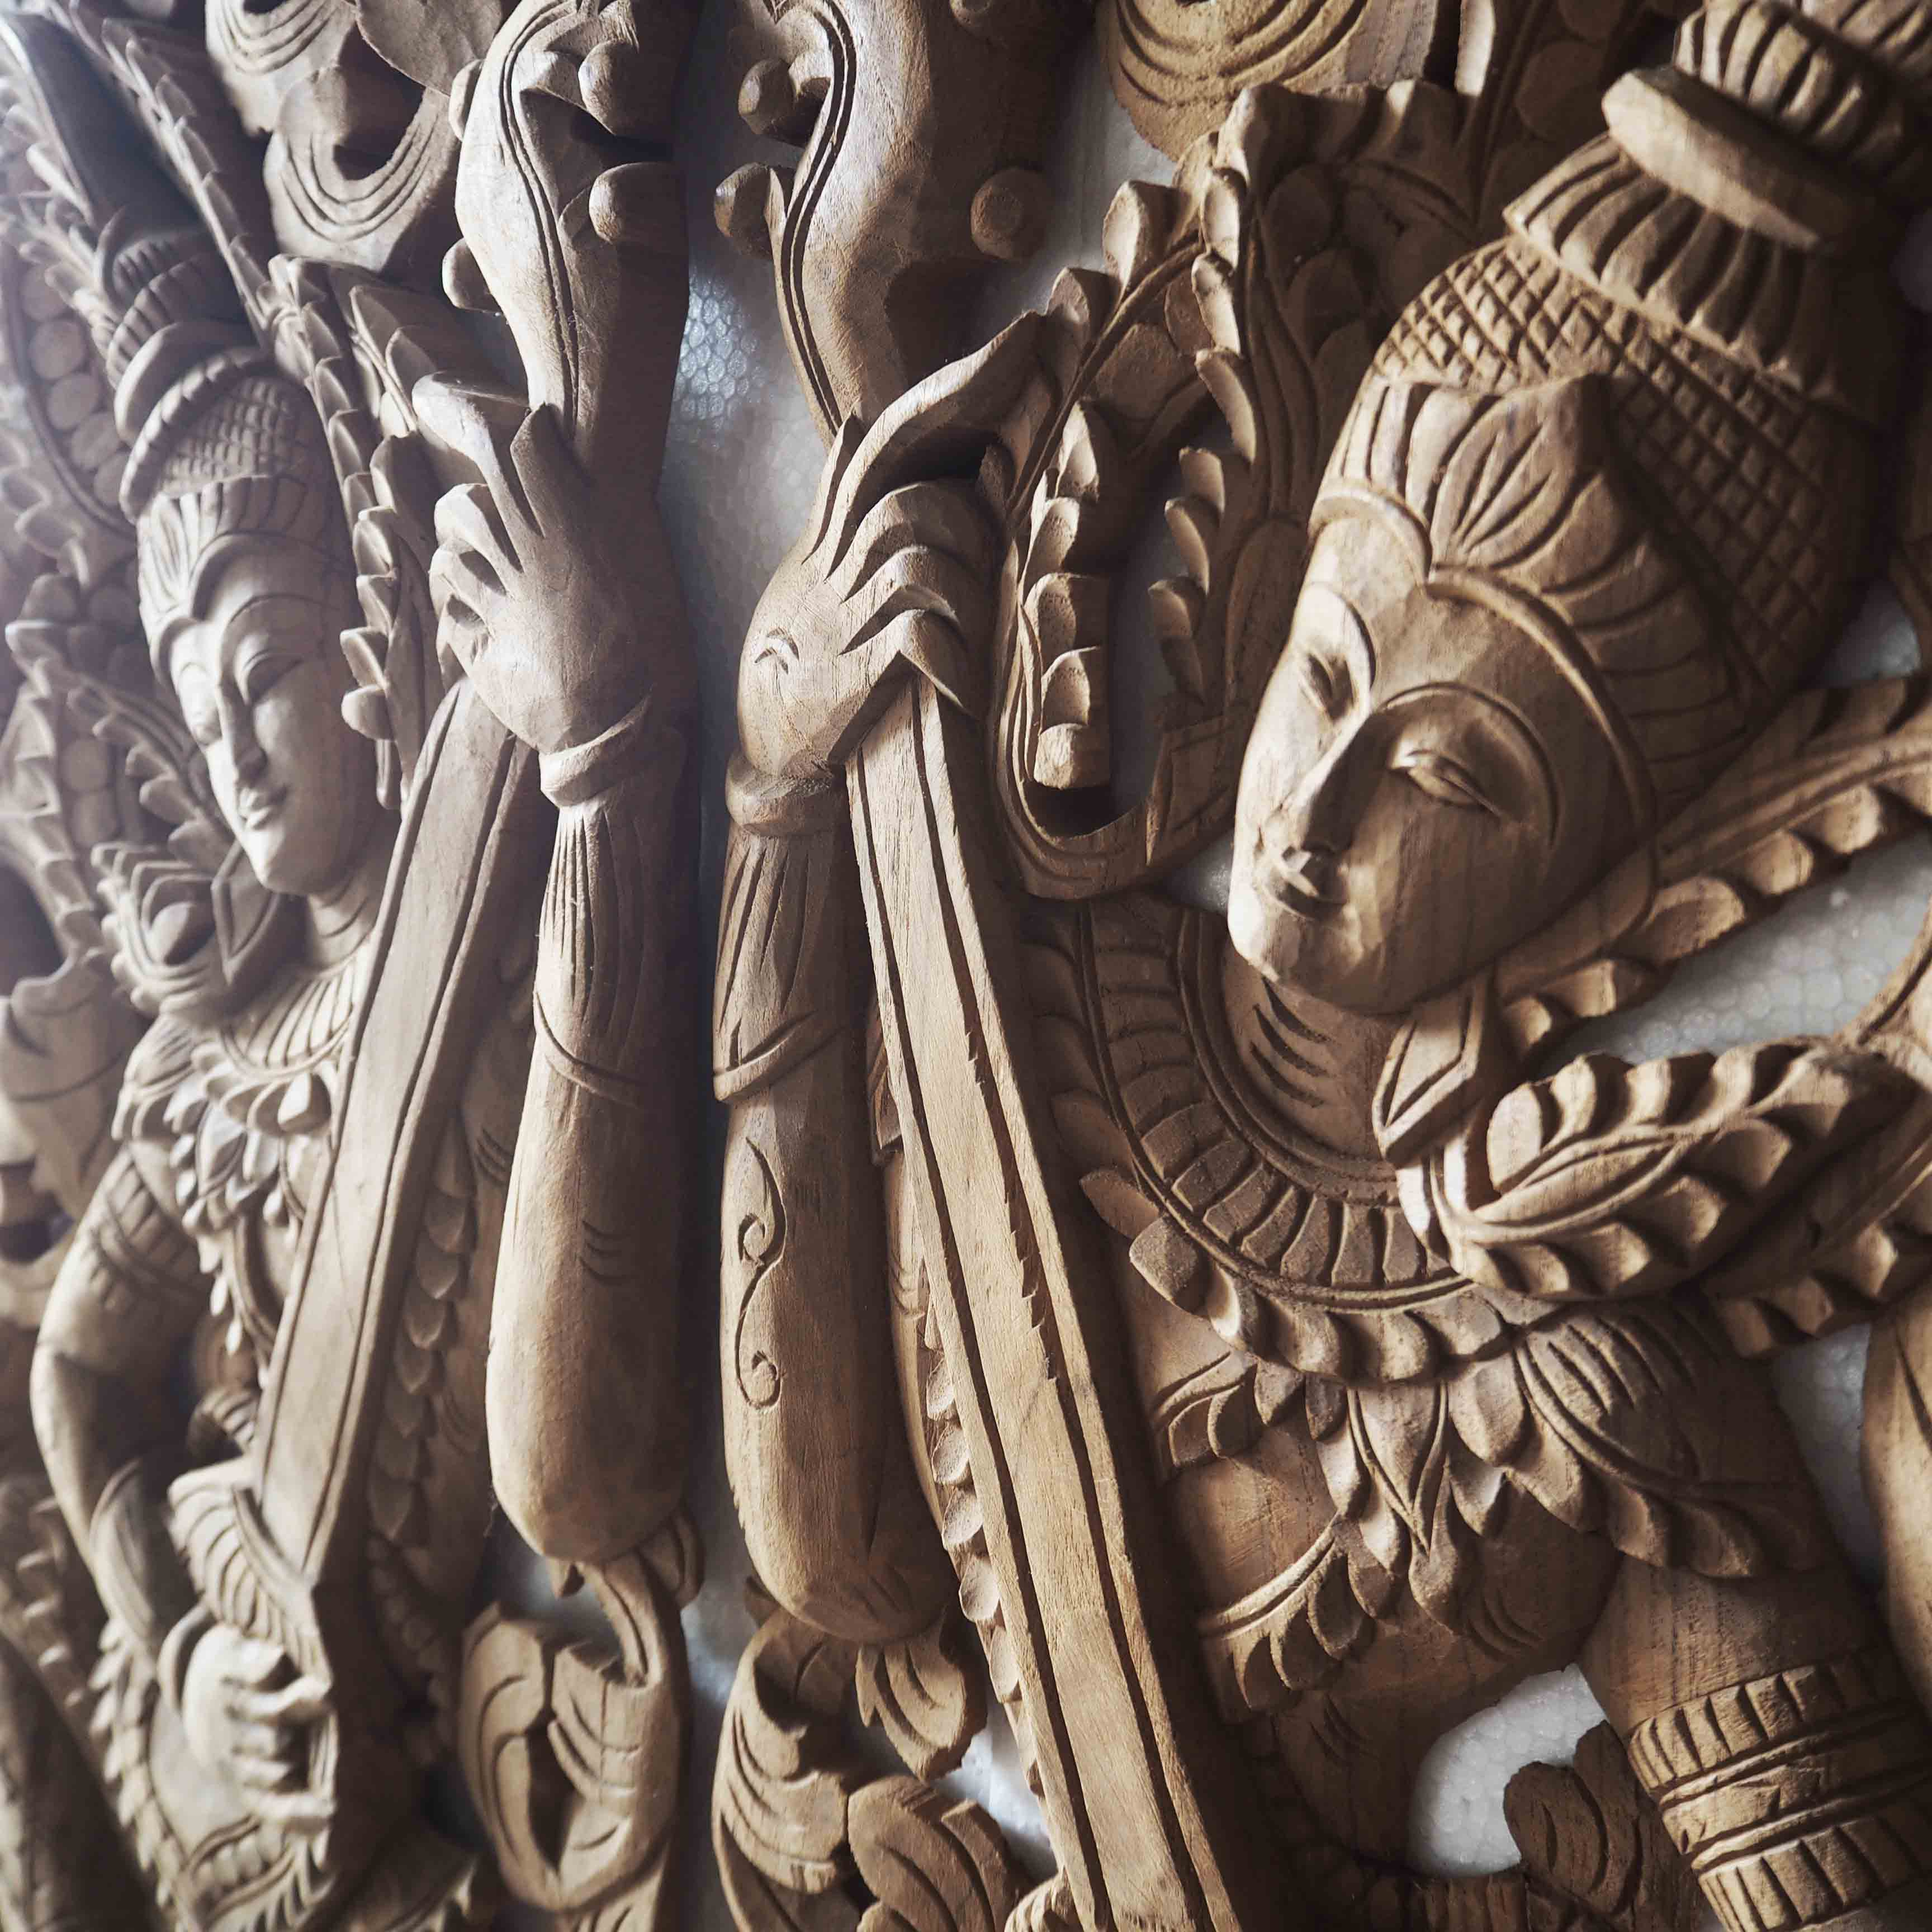 Buy Pair Of Wooden Wall Art Panel From Thailand Online